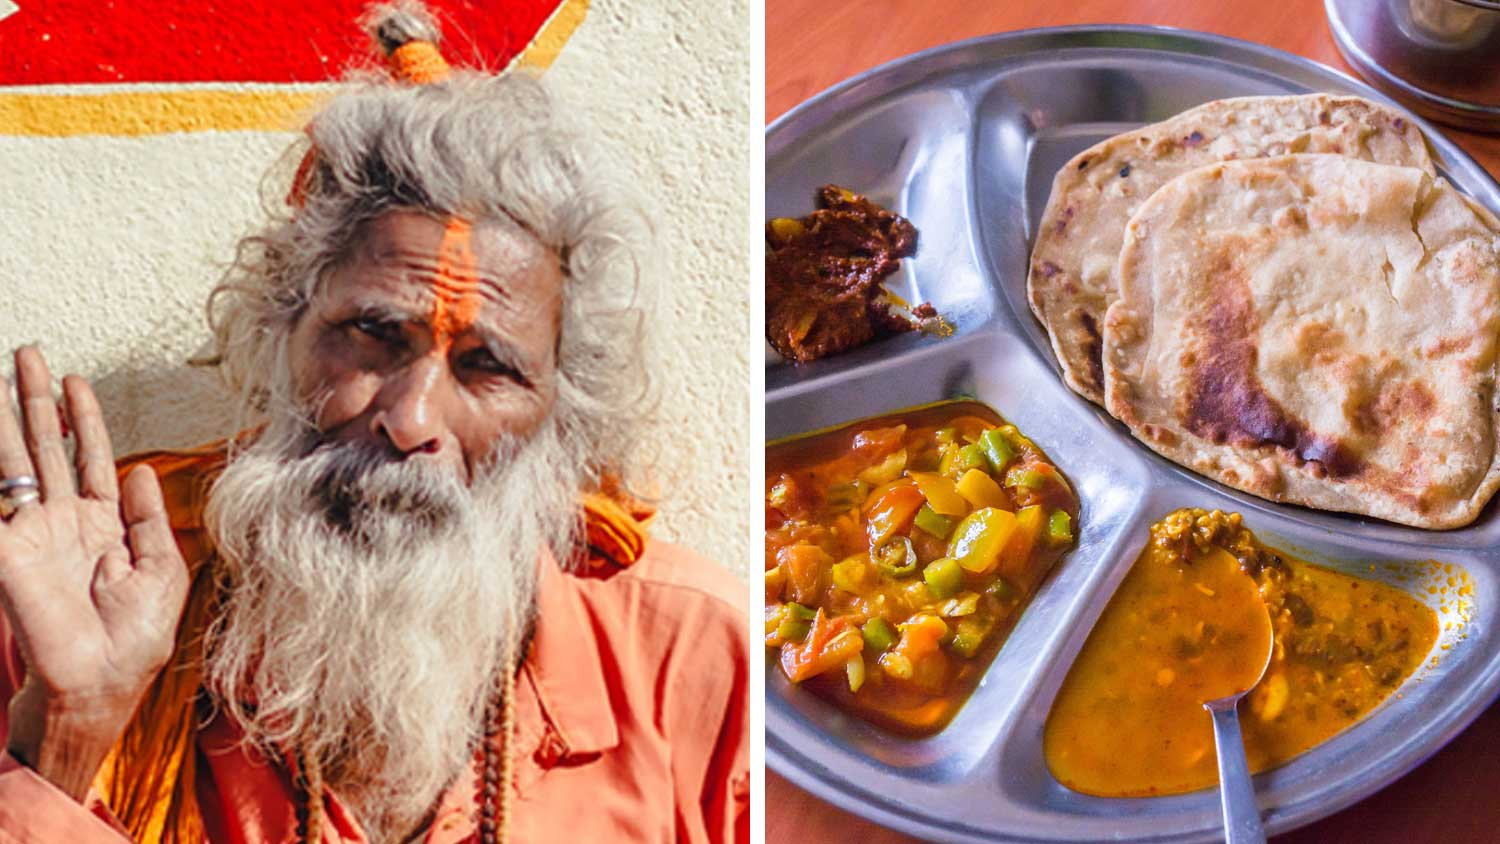 Over 100 Gandhi-Themed Ashrams to Serve Vegan Meals